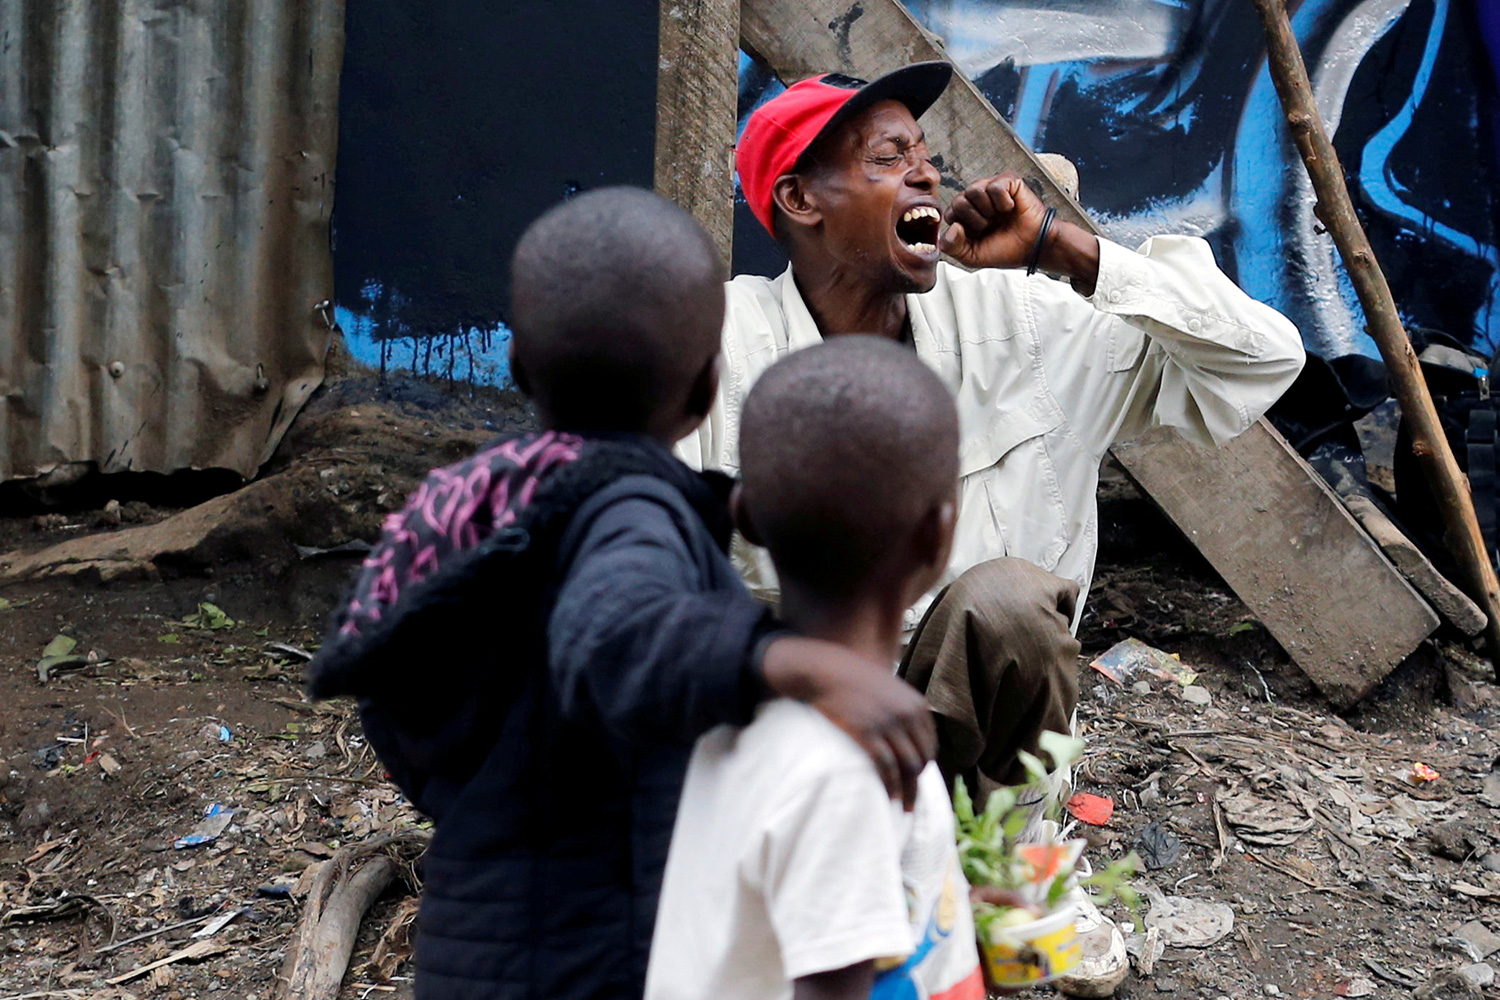 A man coughs as children walk past roadside, during the coronavirus pandemic in Nairobi, Kenya April 19, 2020. This is a powerful image of two children looking at a man who is coughing into his had with his head turned. REUTERS/Thomas Mukoya